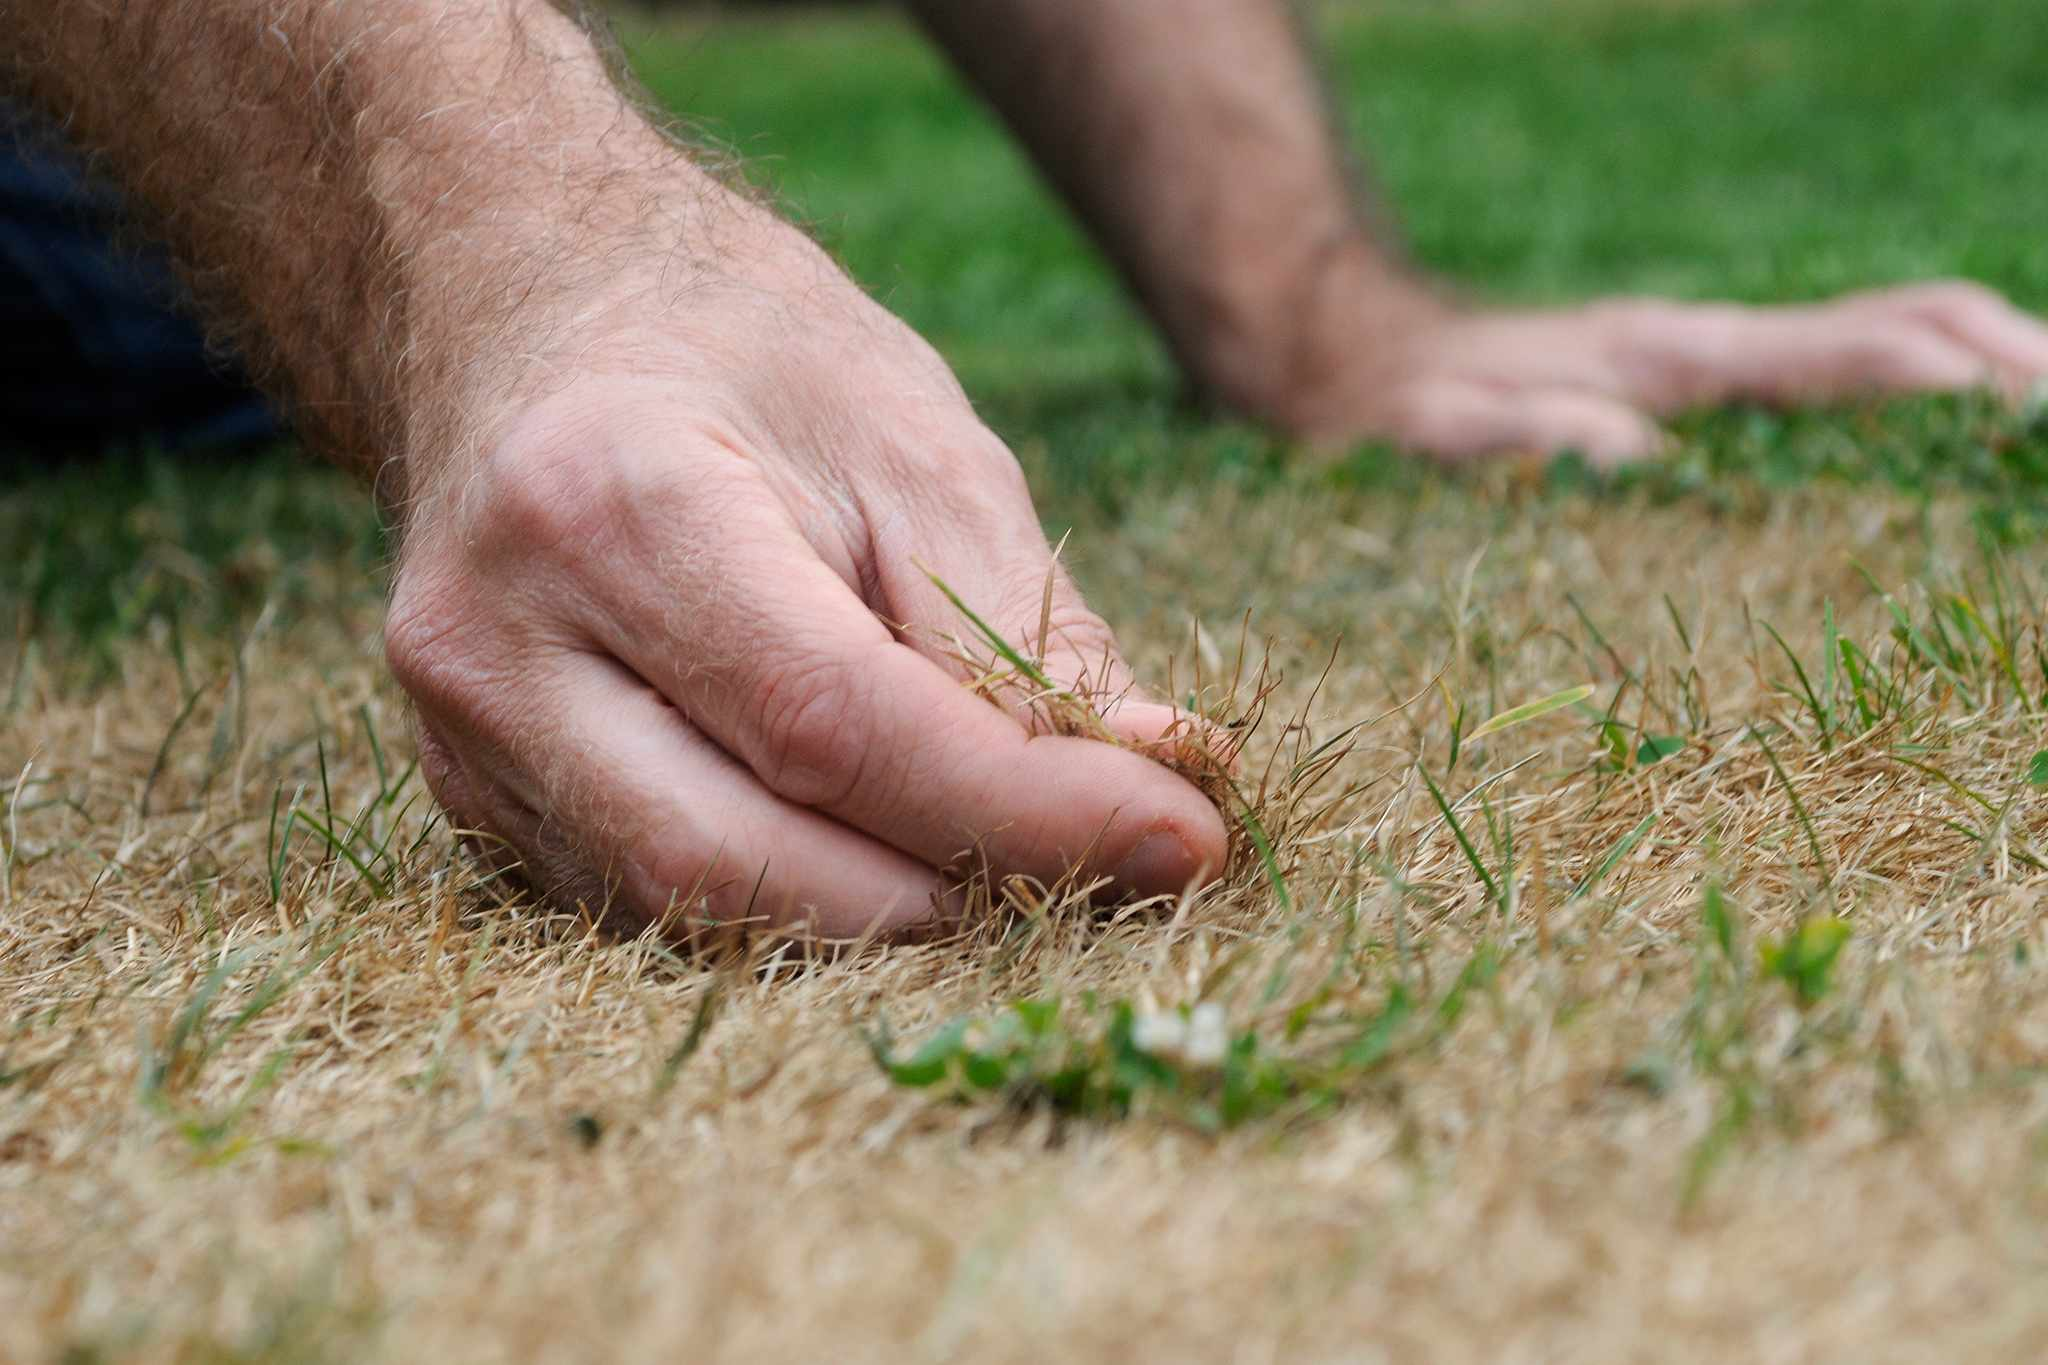 Repairing a lawn patch